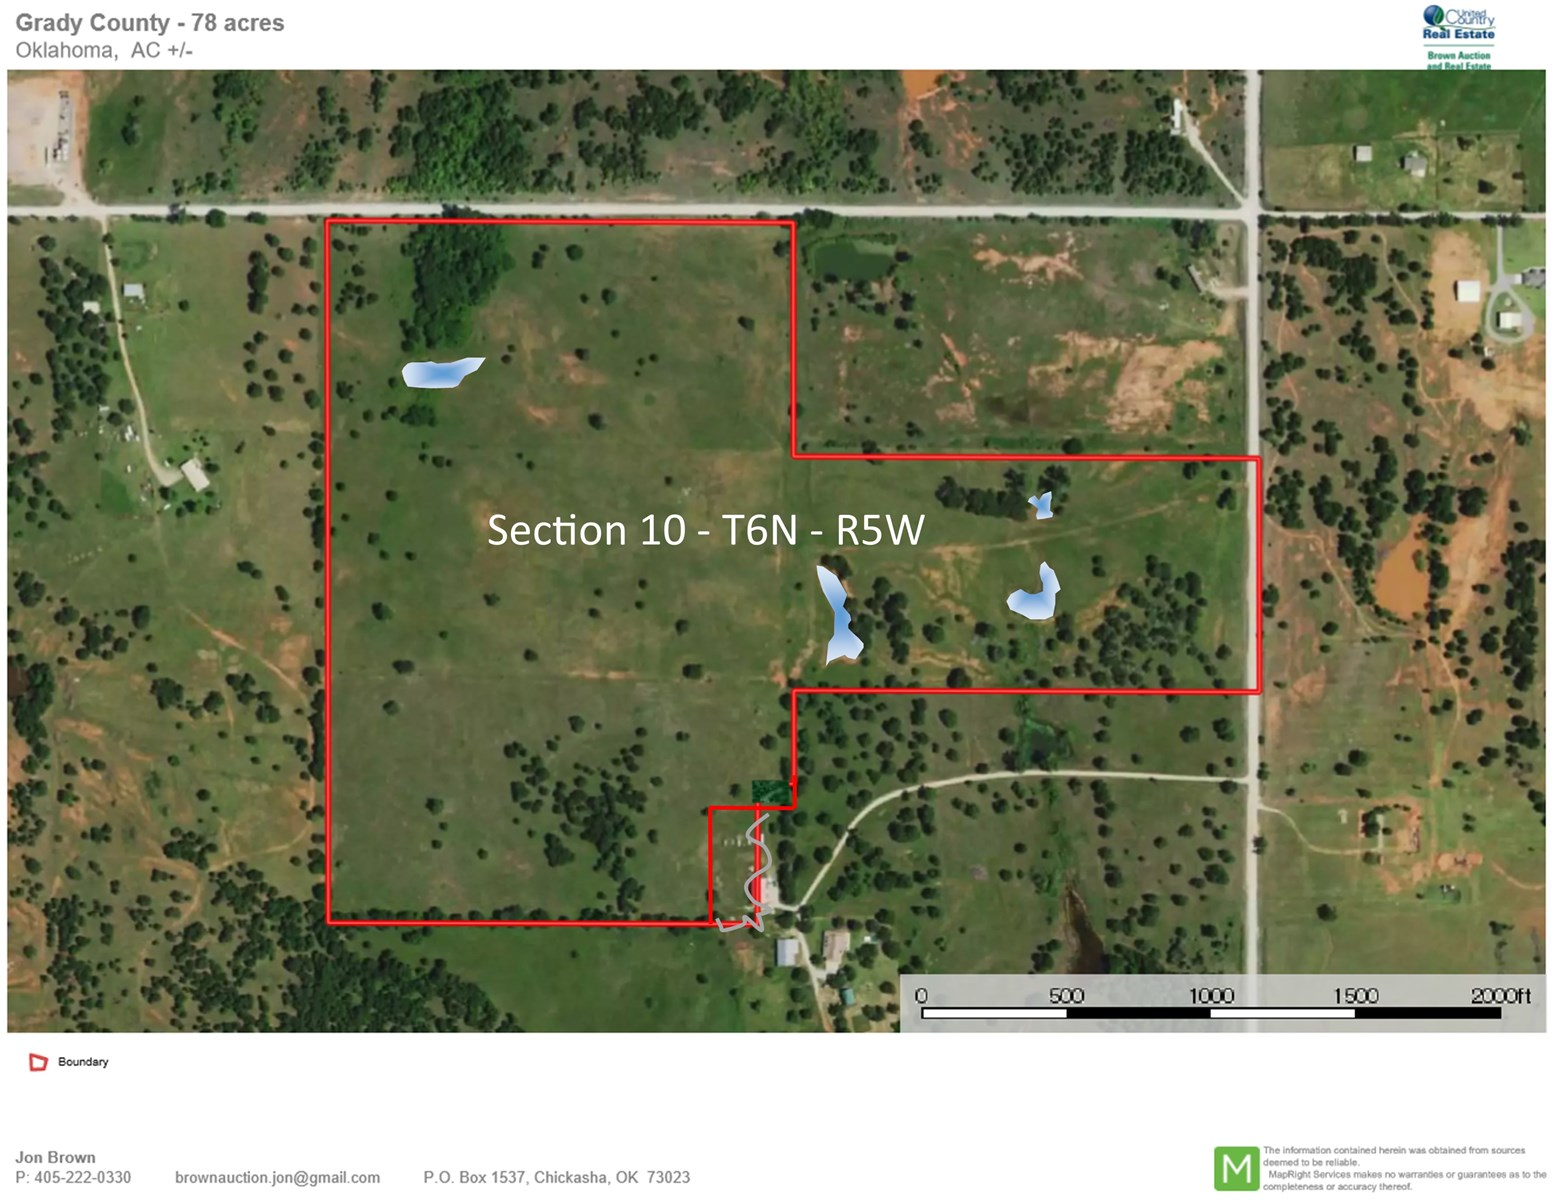 Land For Sale - Grady County Oklahoma - Ranch - Hunting